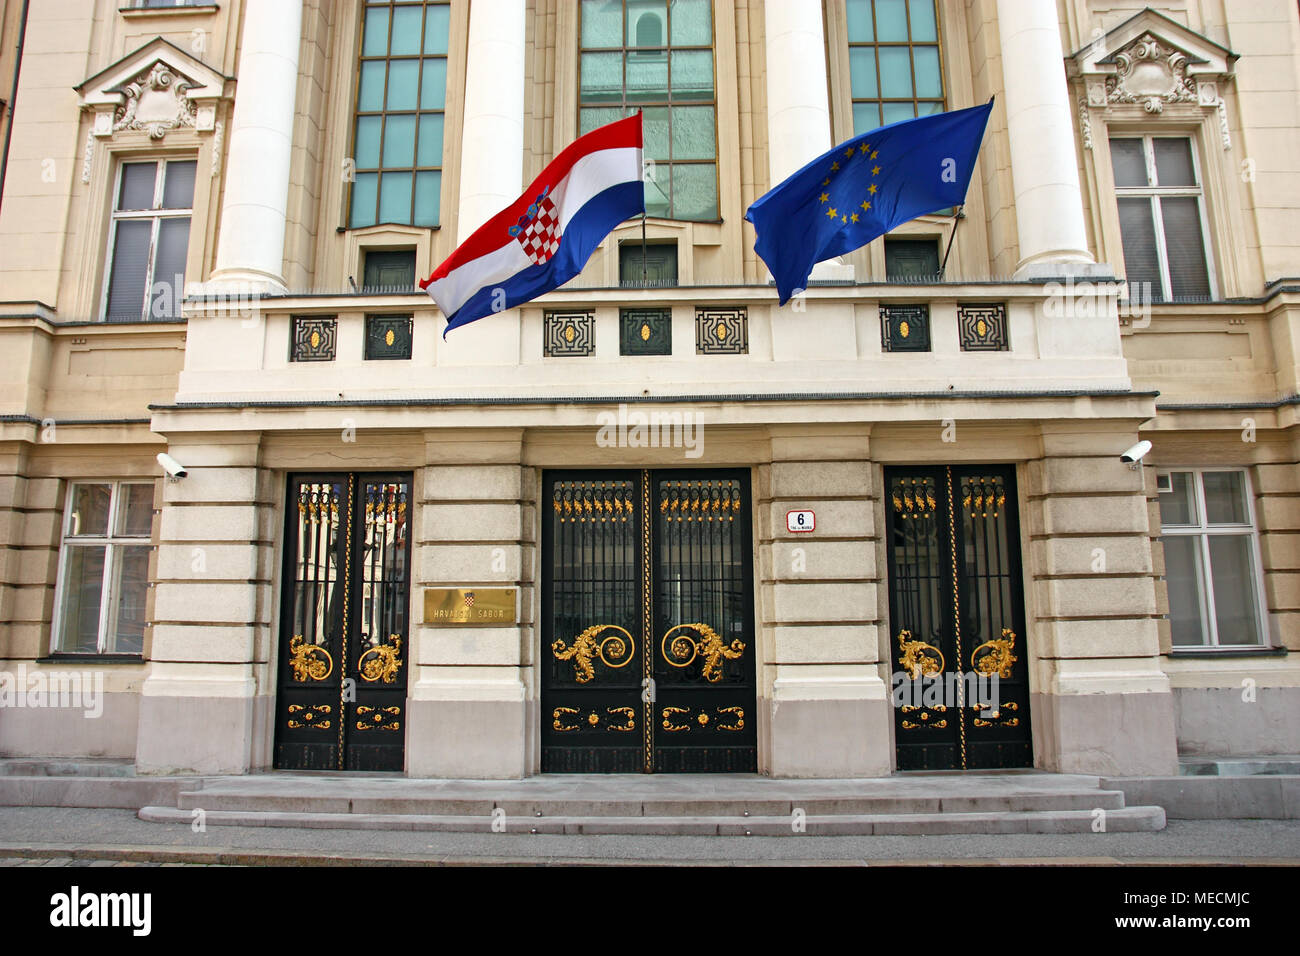 Entrance to the Croatian Parliament with Flags of European Union and Croatia - Stock Image